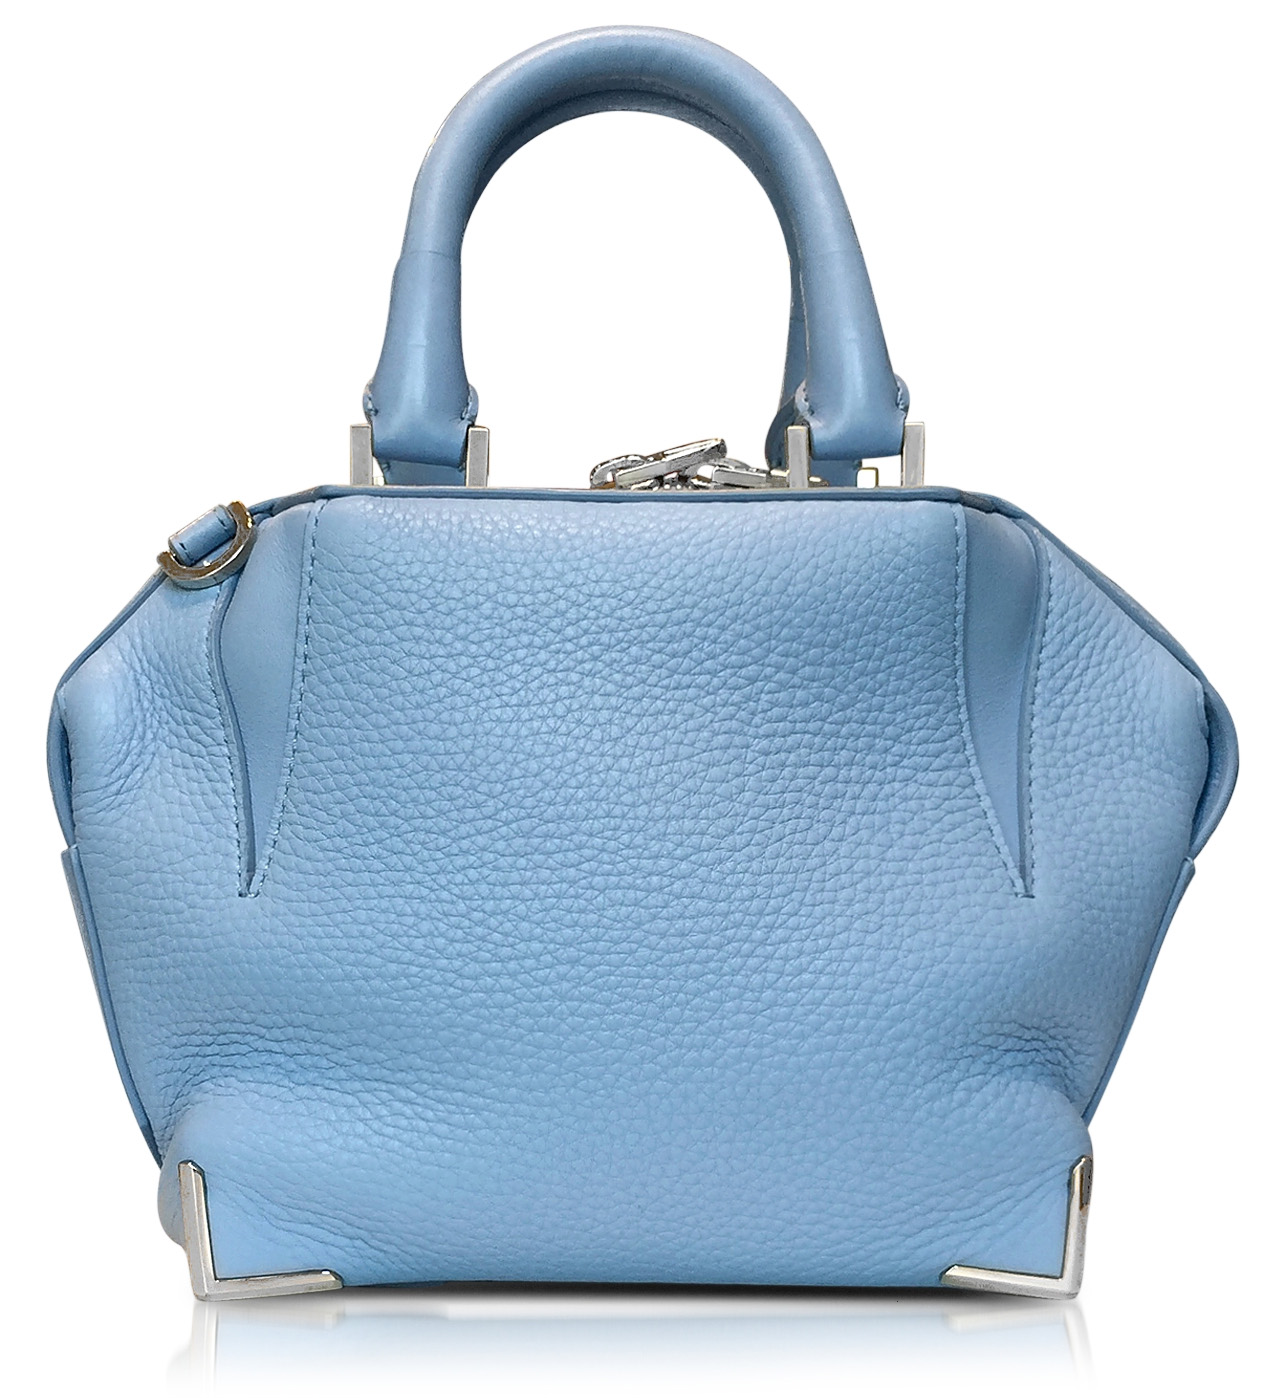 Designer handbags - Alexander Wang Light Blue Mini Emilie Atlas Soft Pebbled Leather Tote